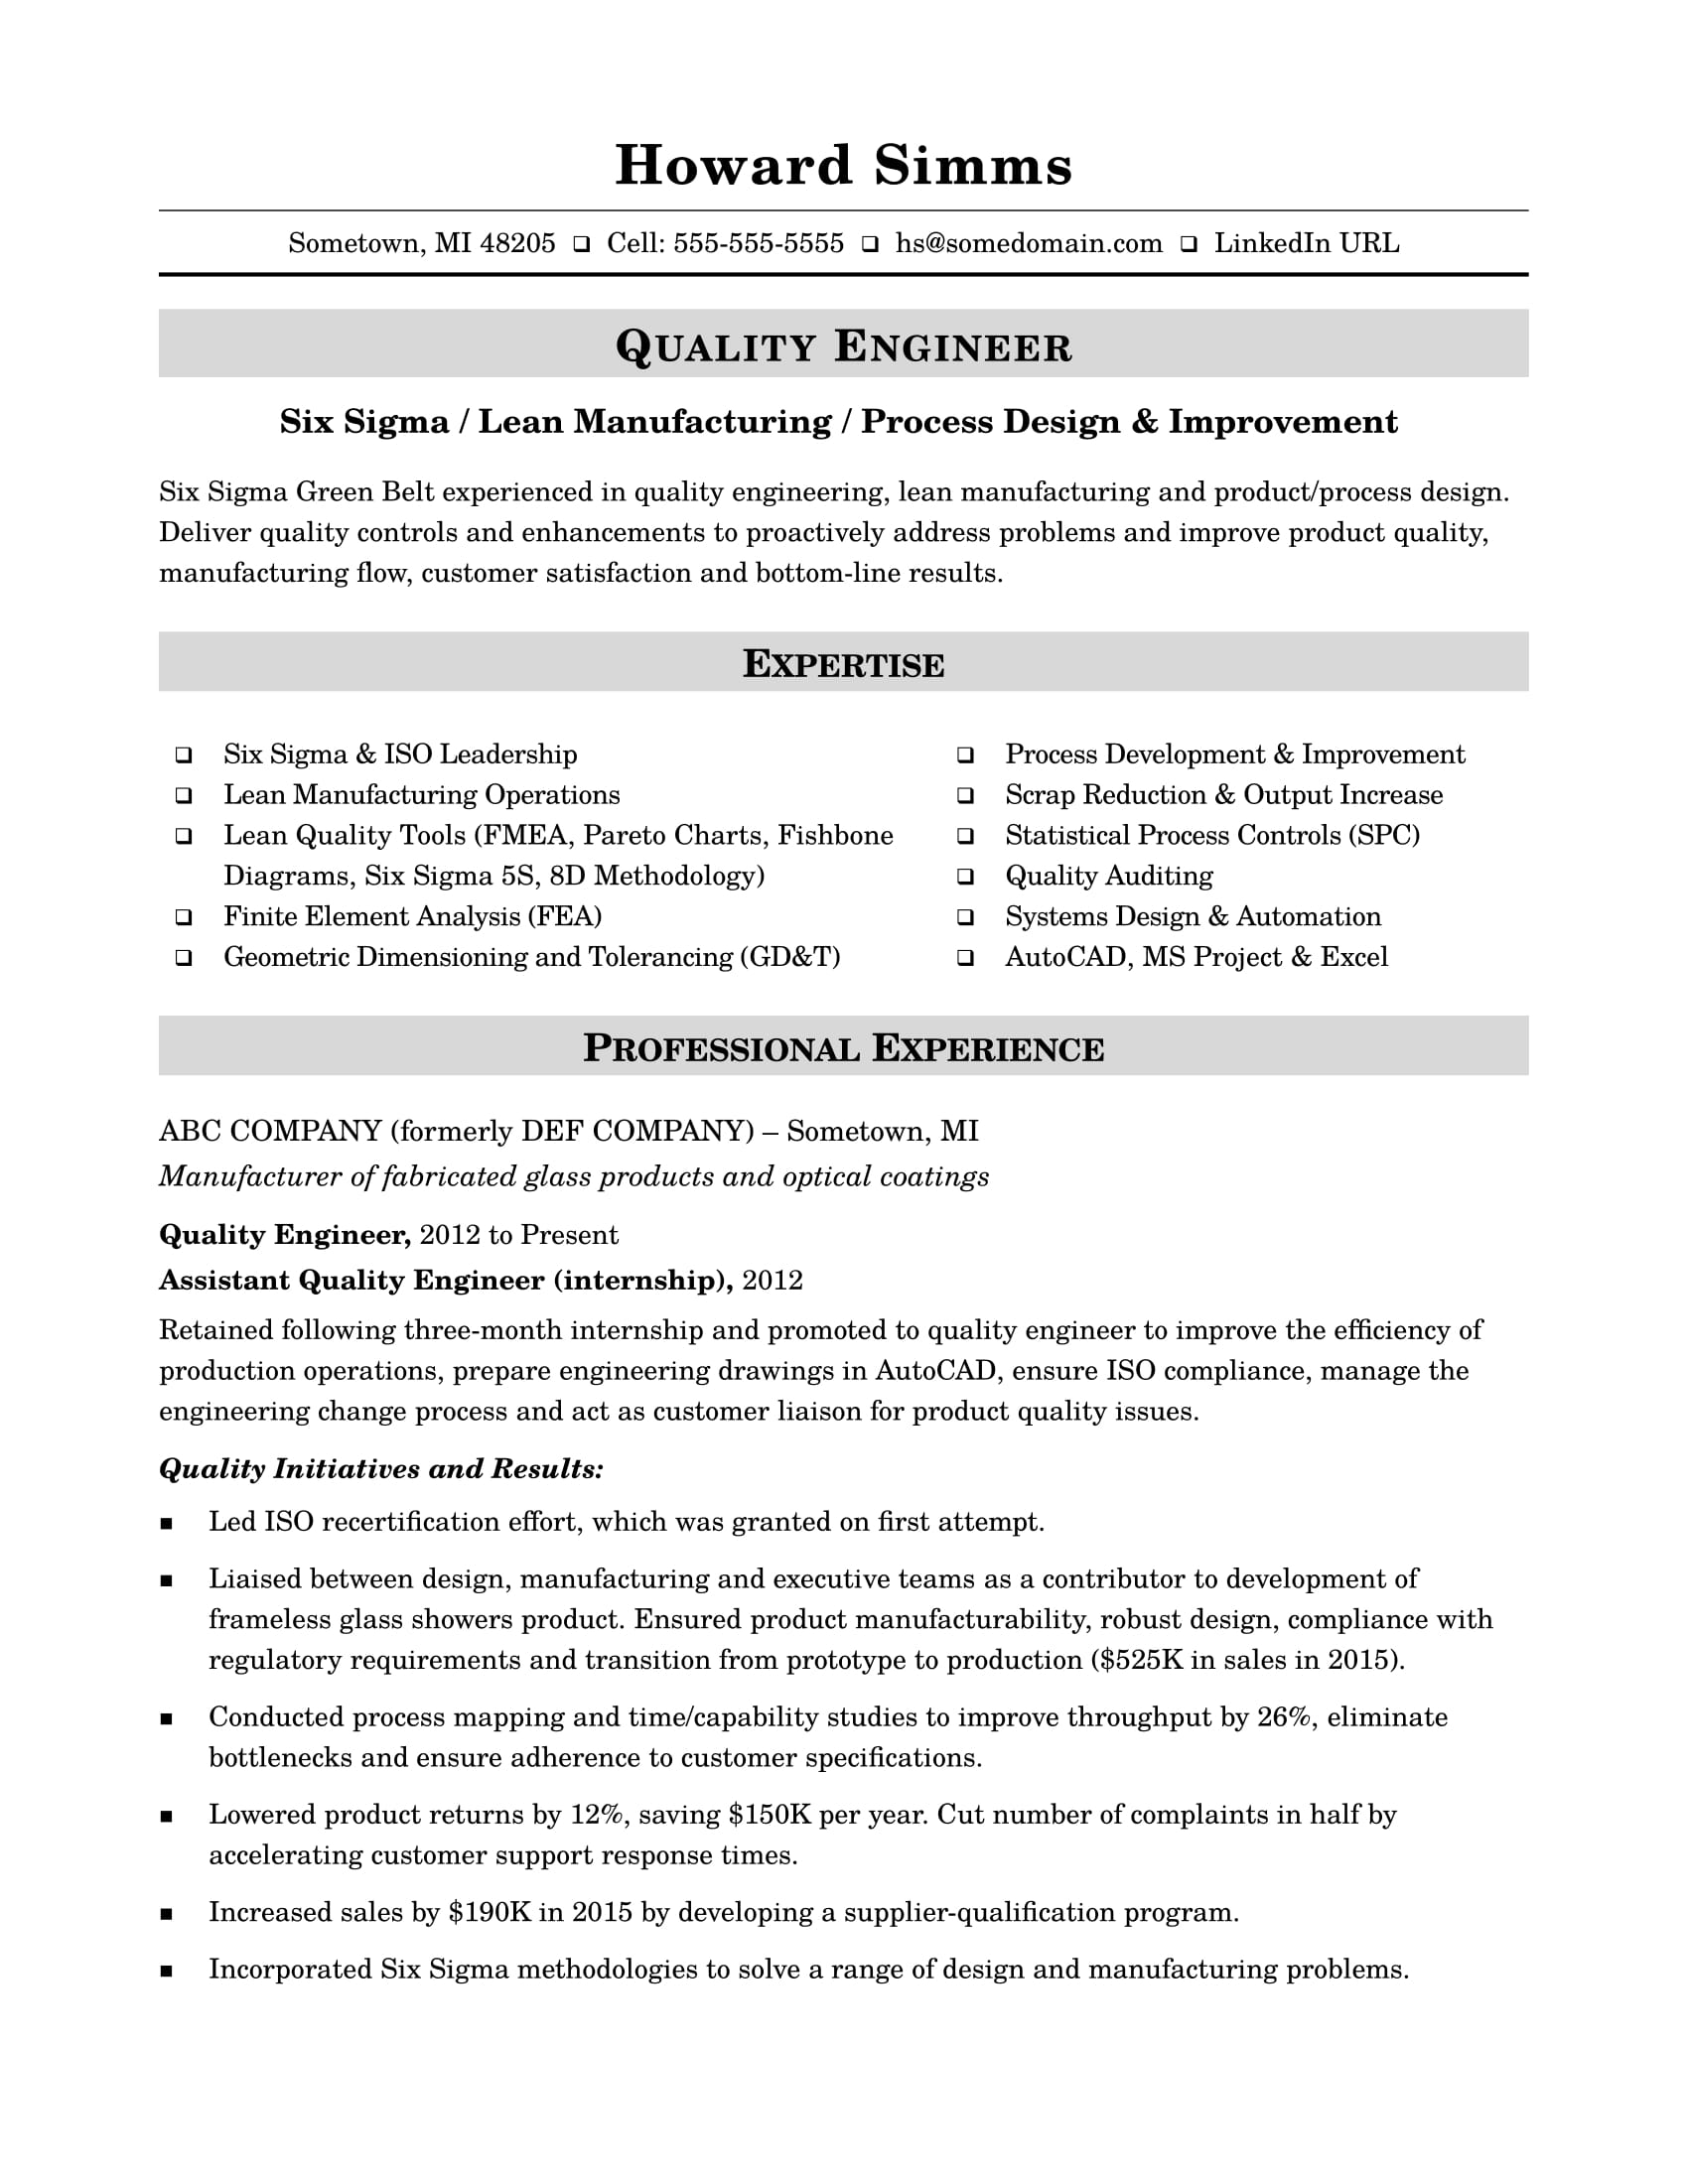 Resume Format For Quality Control Engineer Sample Resume For A Midlevel Quality Engineer Monster